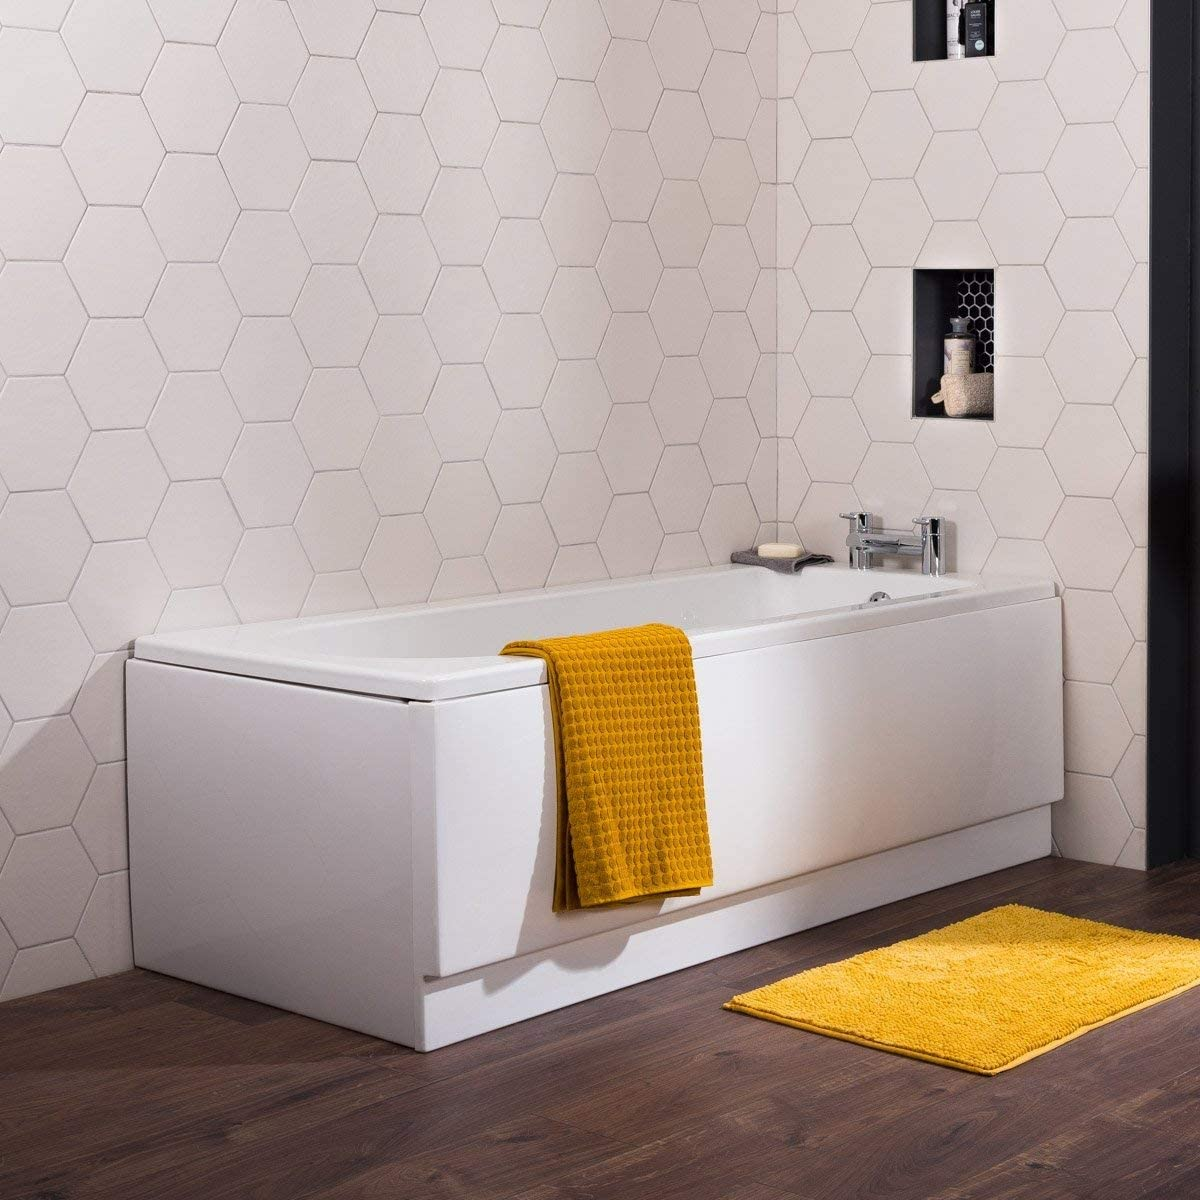 Nrg Modern Bathroom Suite With 1500mm Bath Wc Toilet And Wash Basin Sink